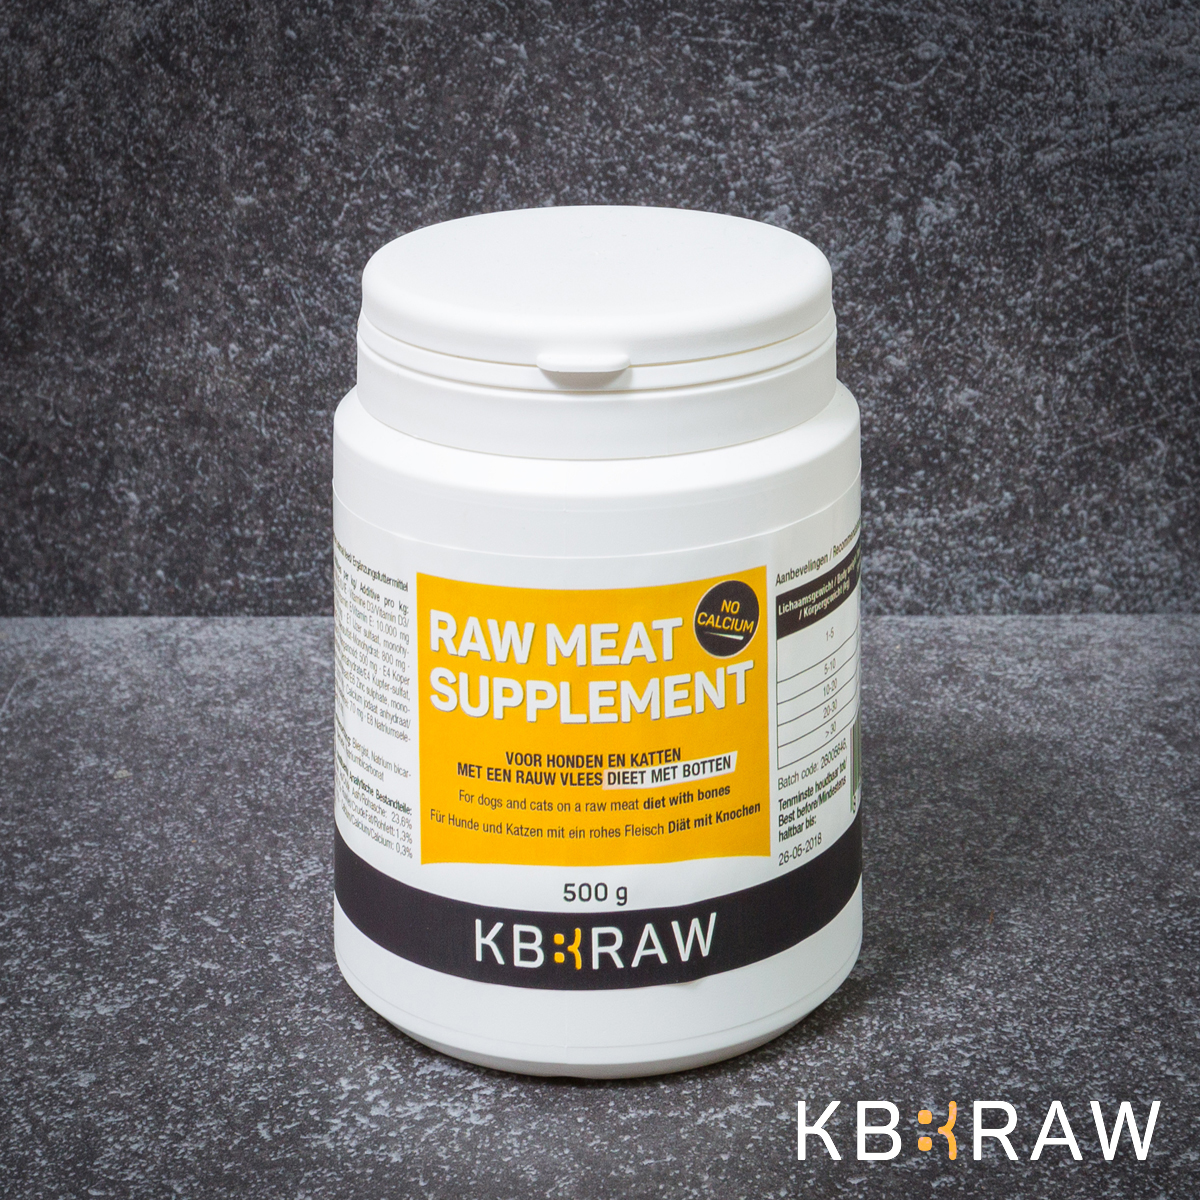 KB EXTRA - RAW MEAT SUPPLEMENT NO CA